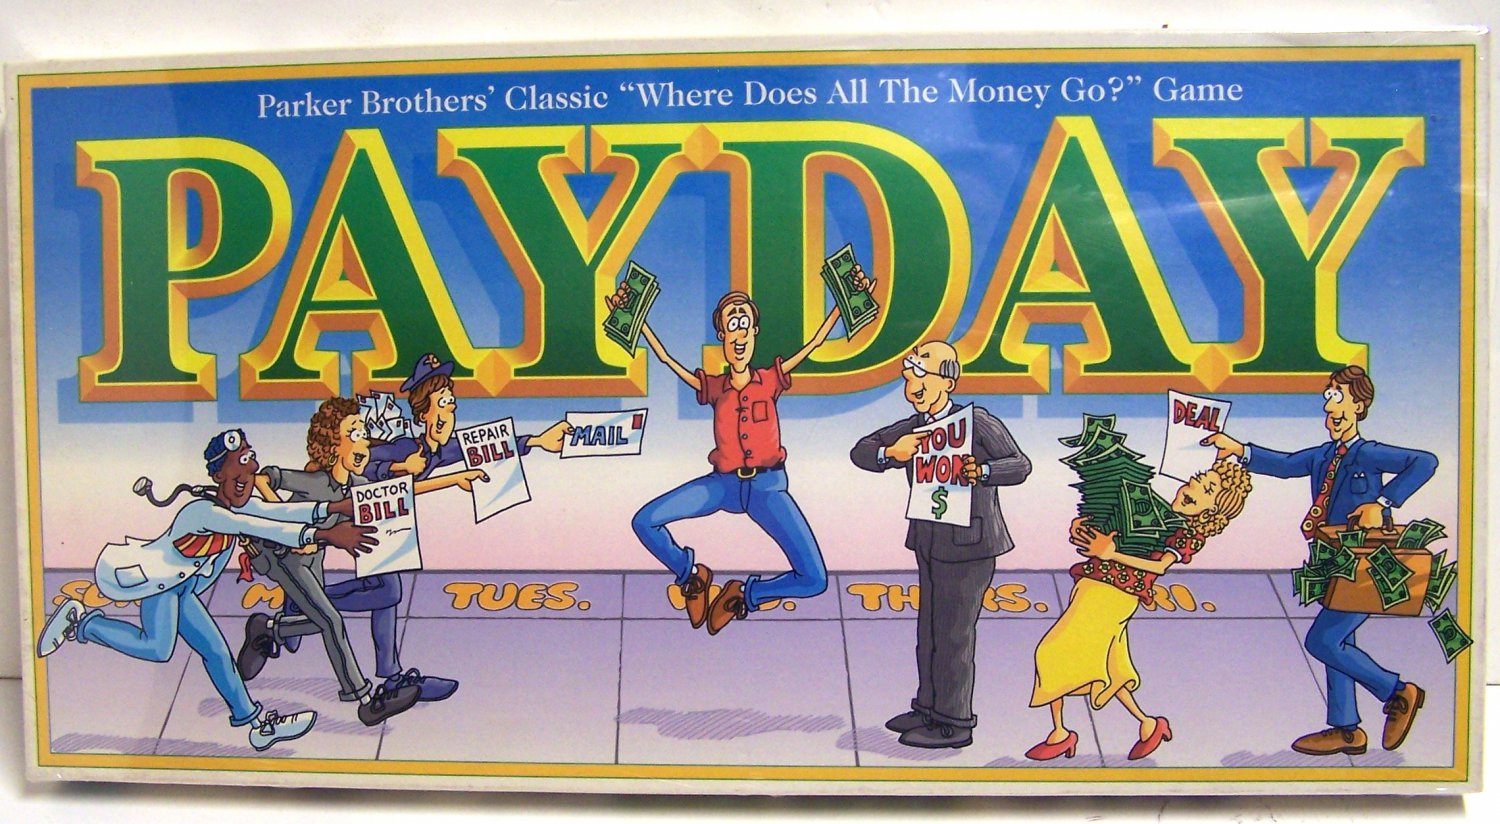 Payday 1994 Edition Board game